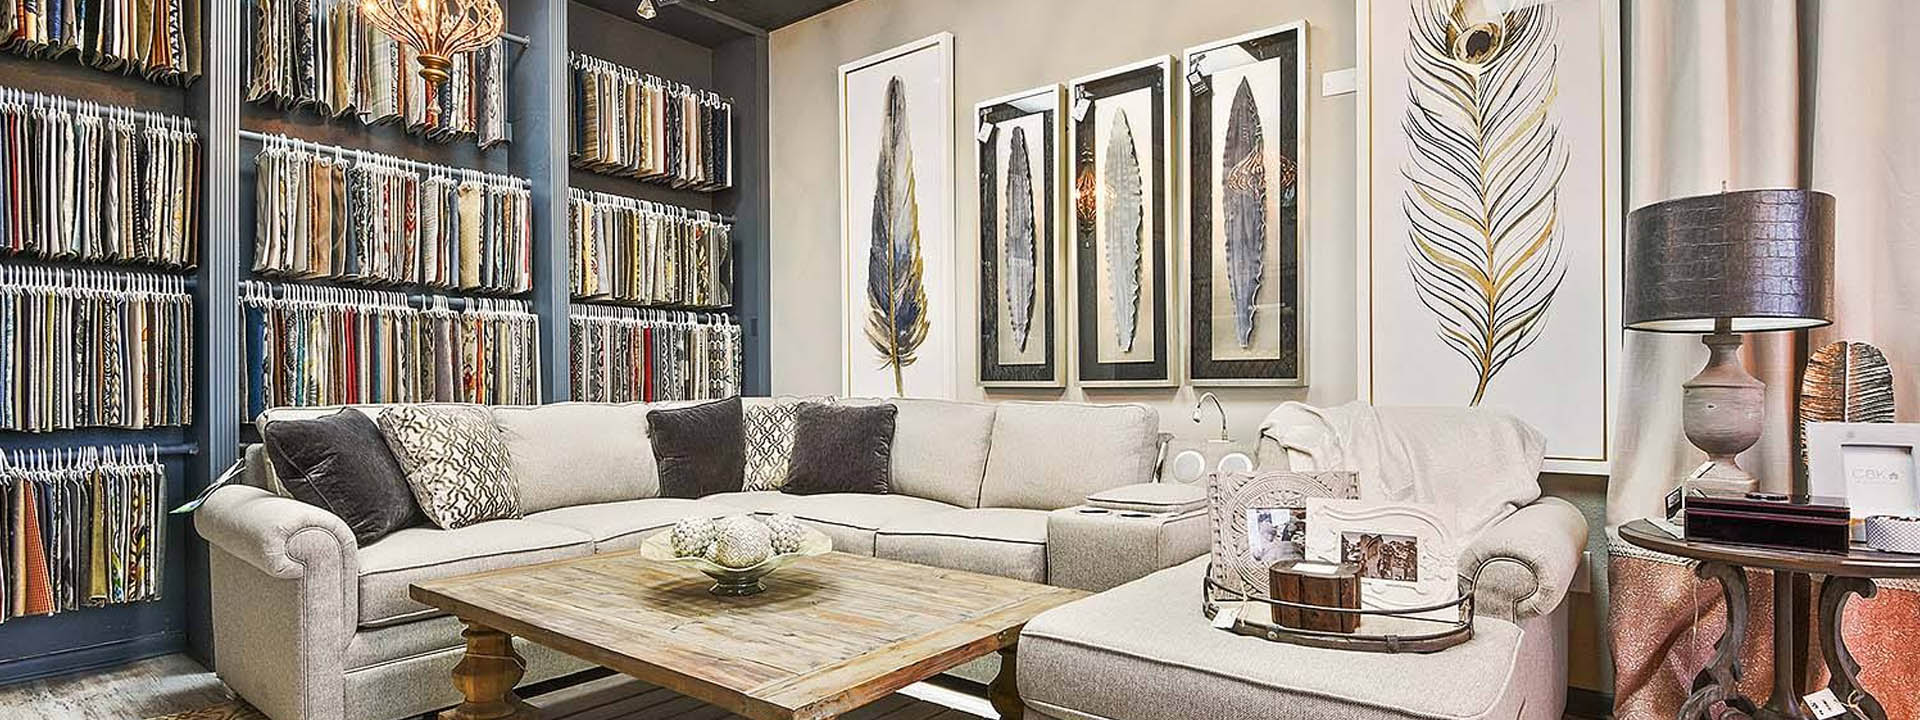 Decor Furniture Furniture In Baton Rouge La Home Décor Design Services